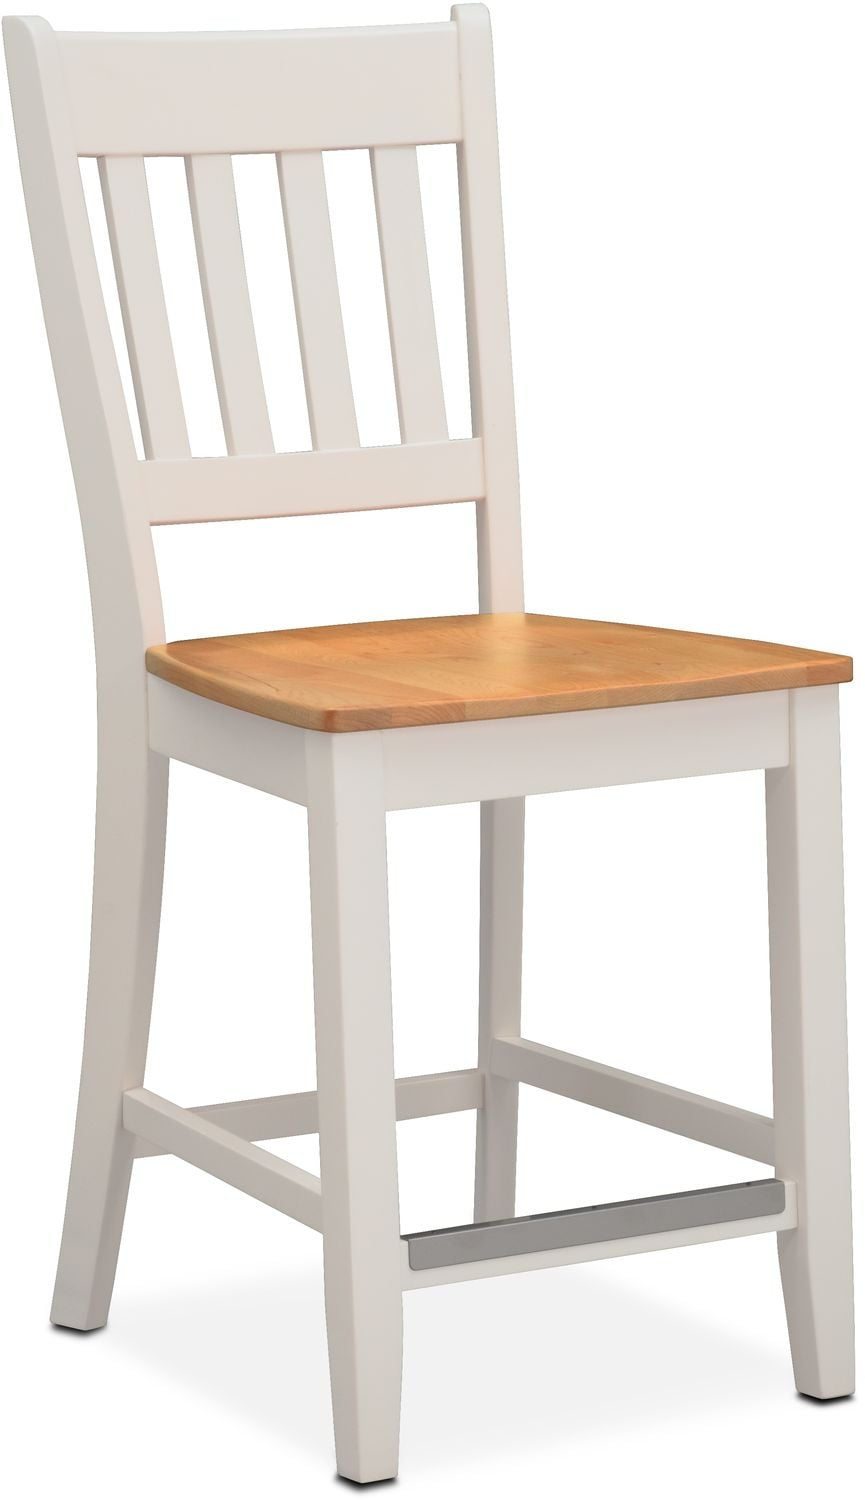 Nantucket Counter Height Slat Back Chair   Maple And White